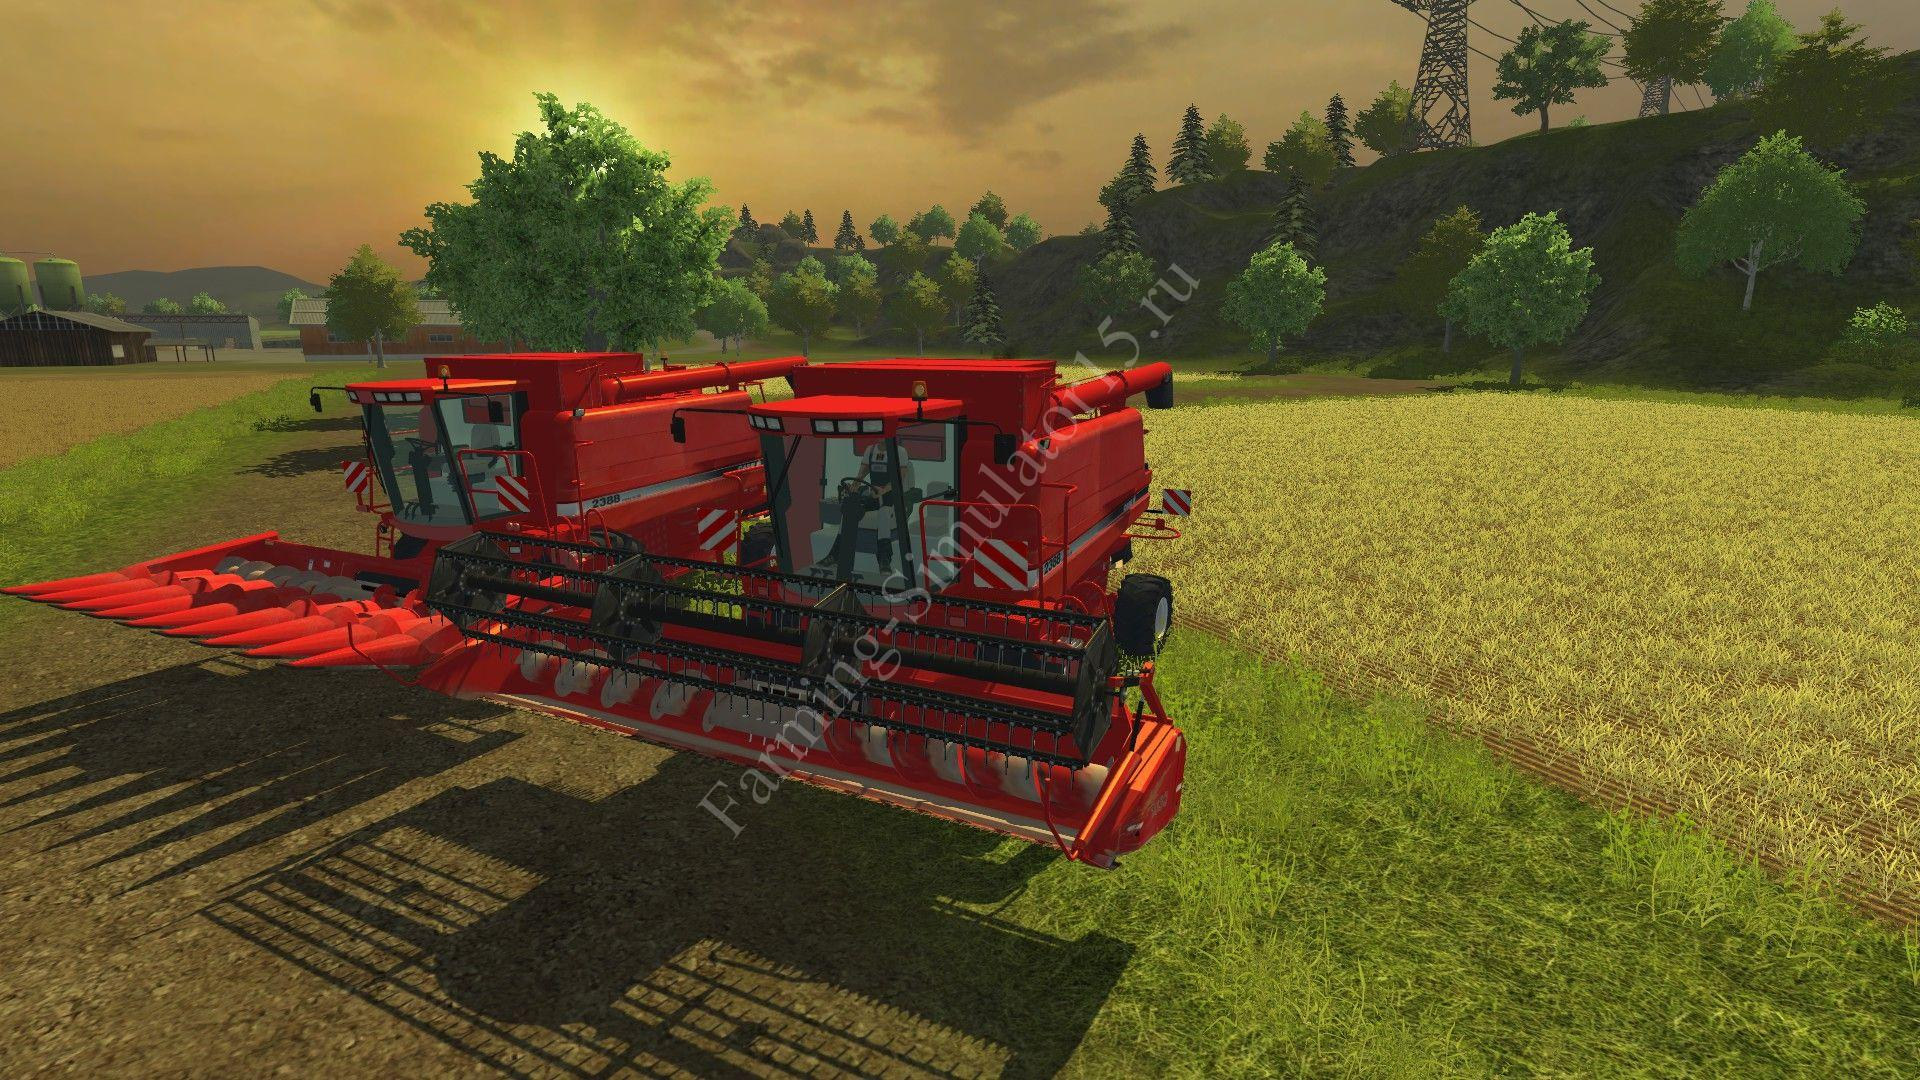 Мод комбайна Case IH 2388 v 2.0 Farming Simulator 2013, Farming Simulator 13